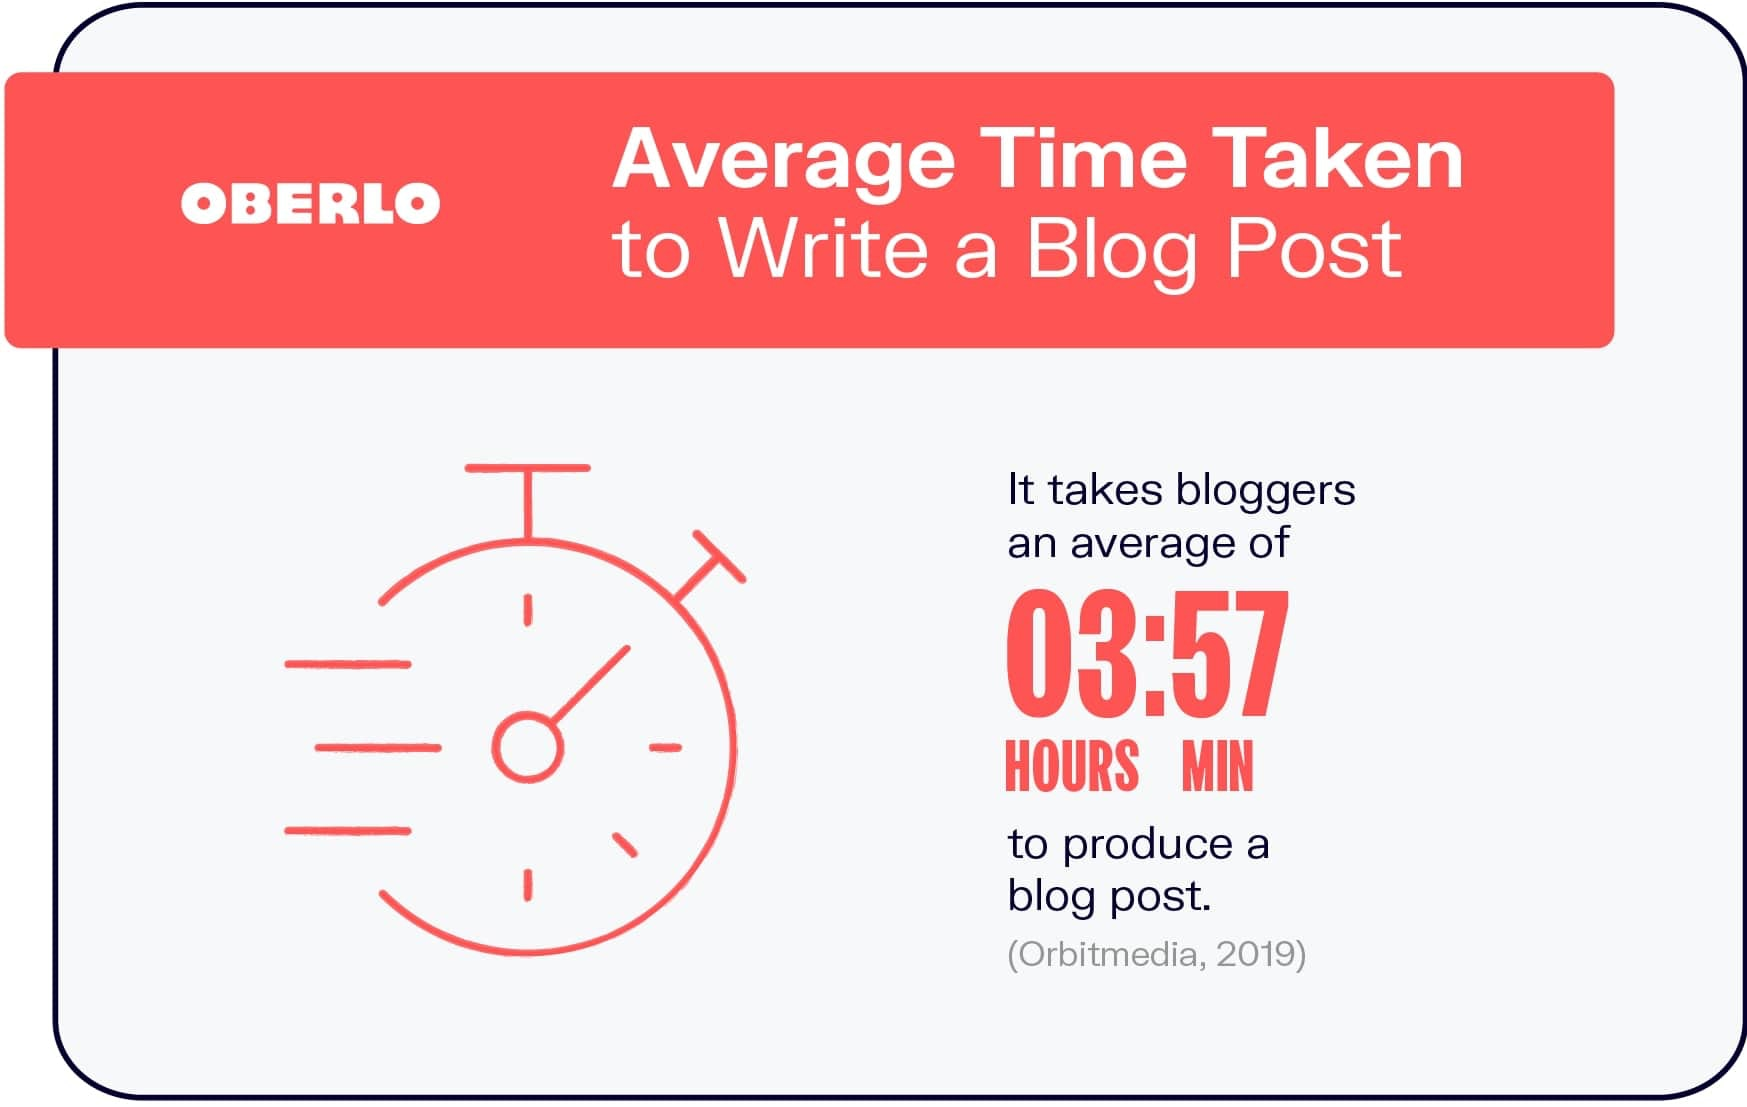 Average Time to Write a Blog Post